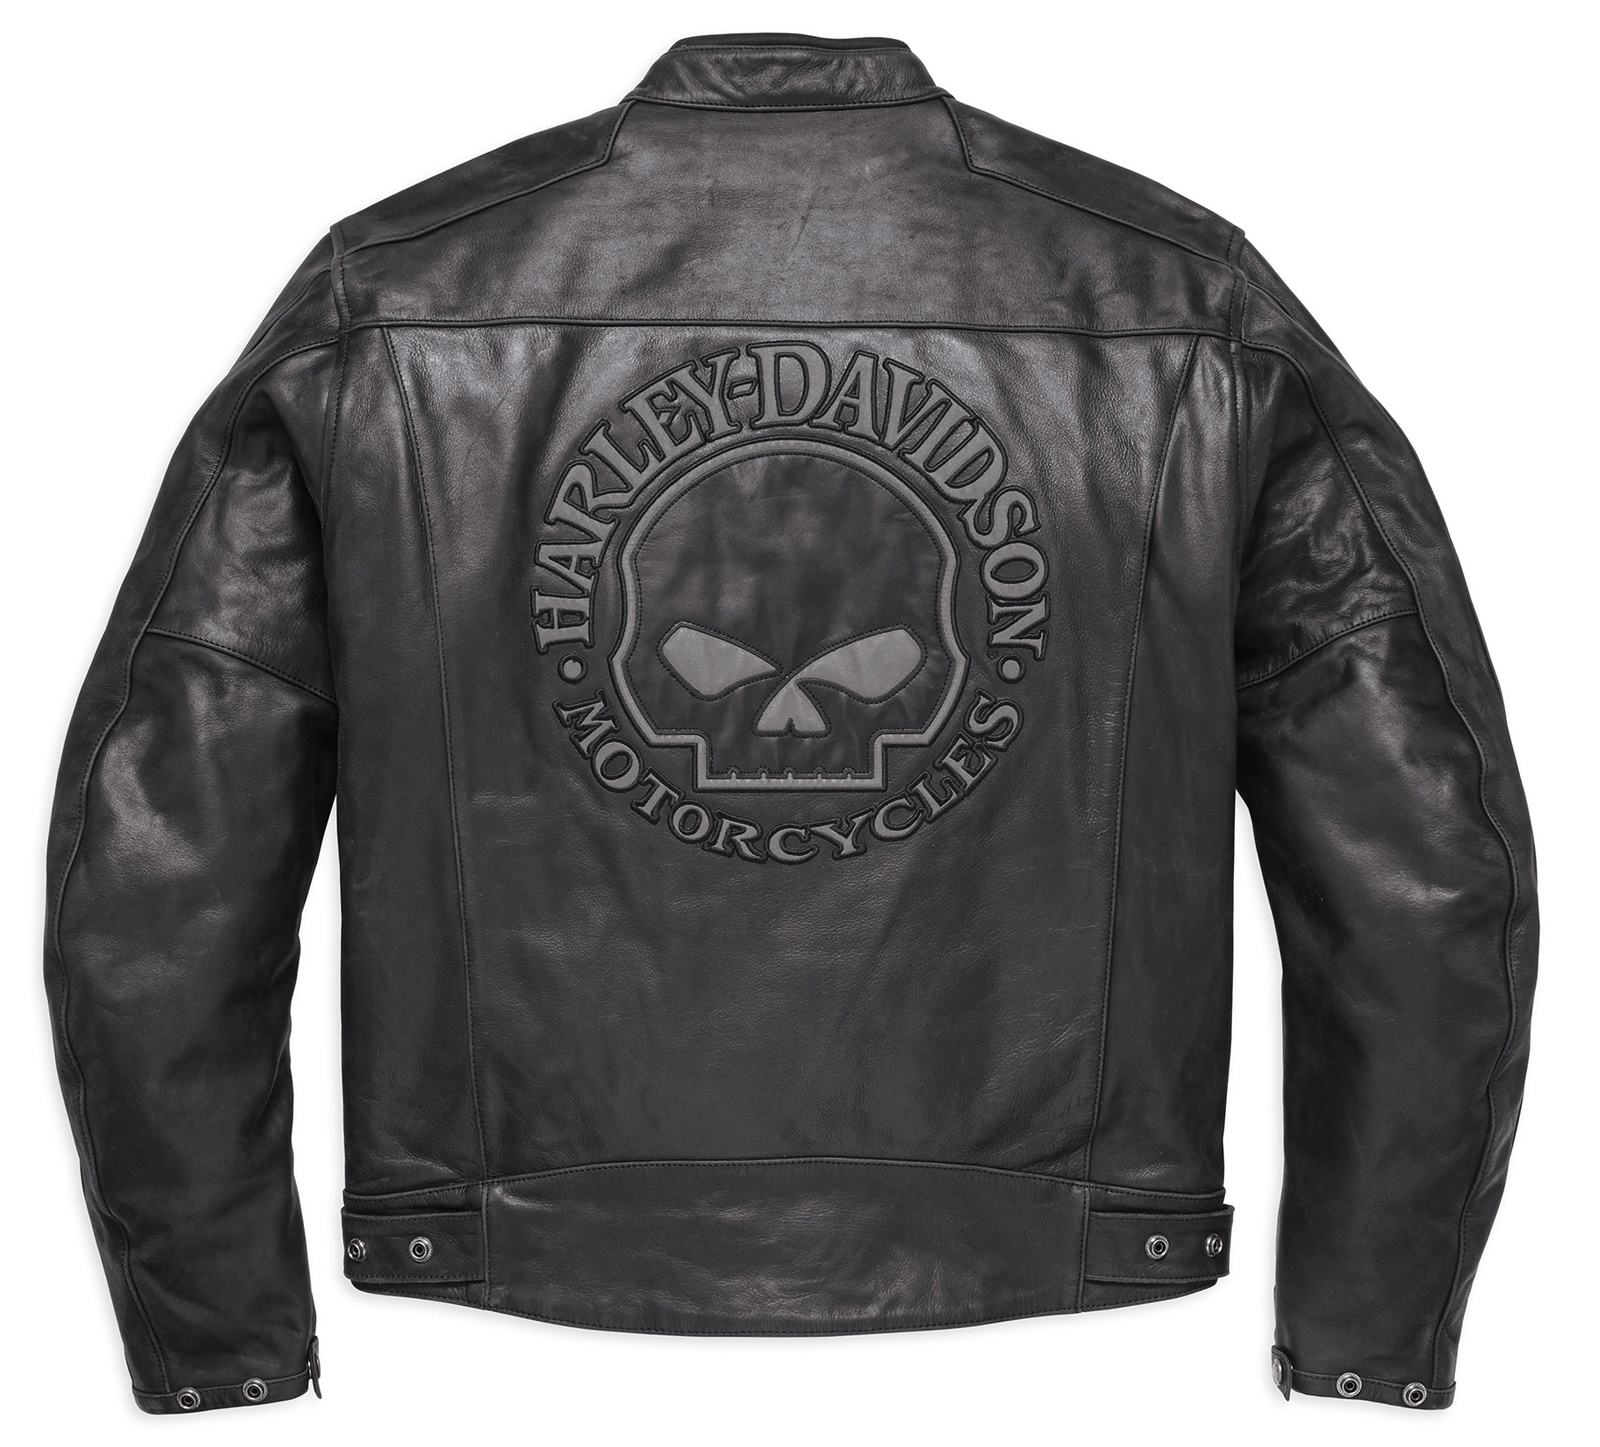 New harley davidson leather jackets